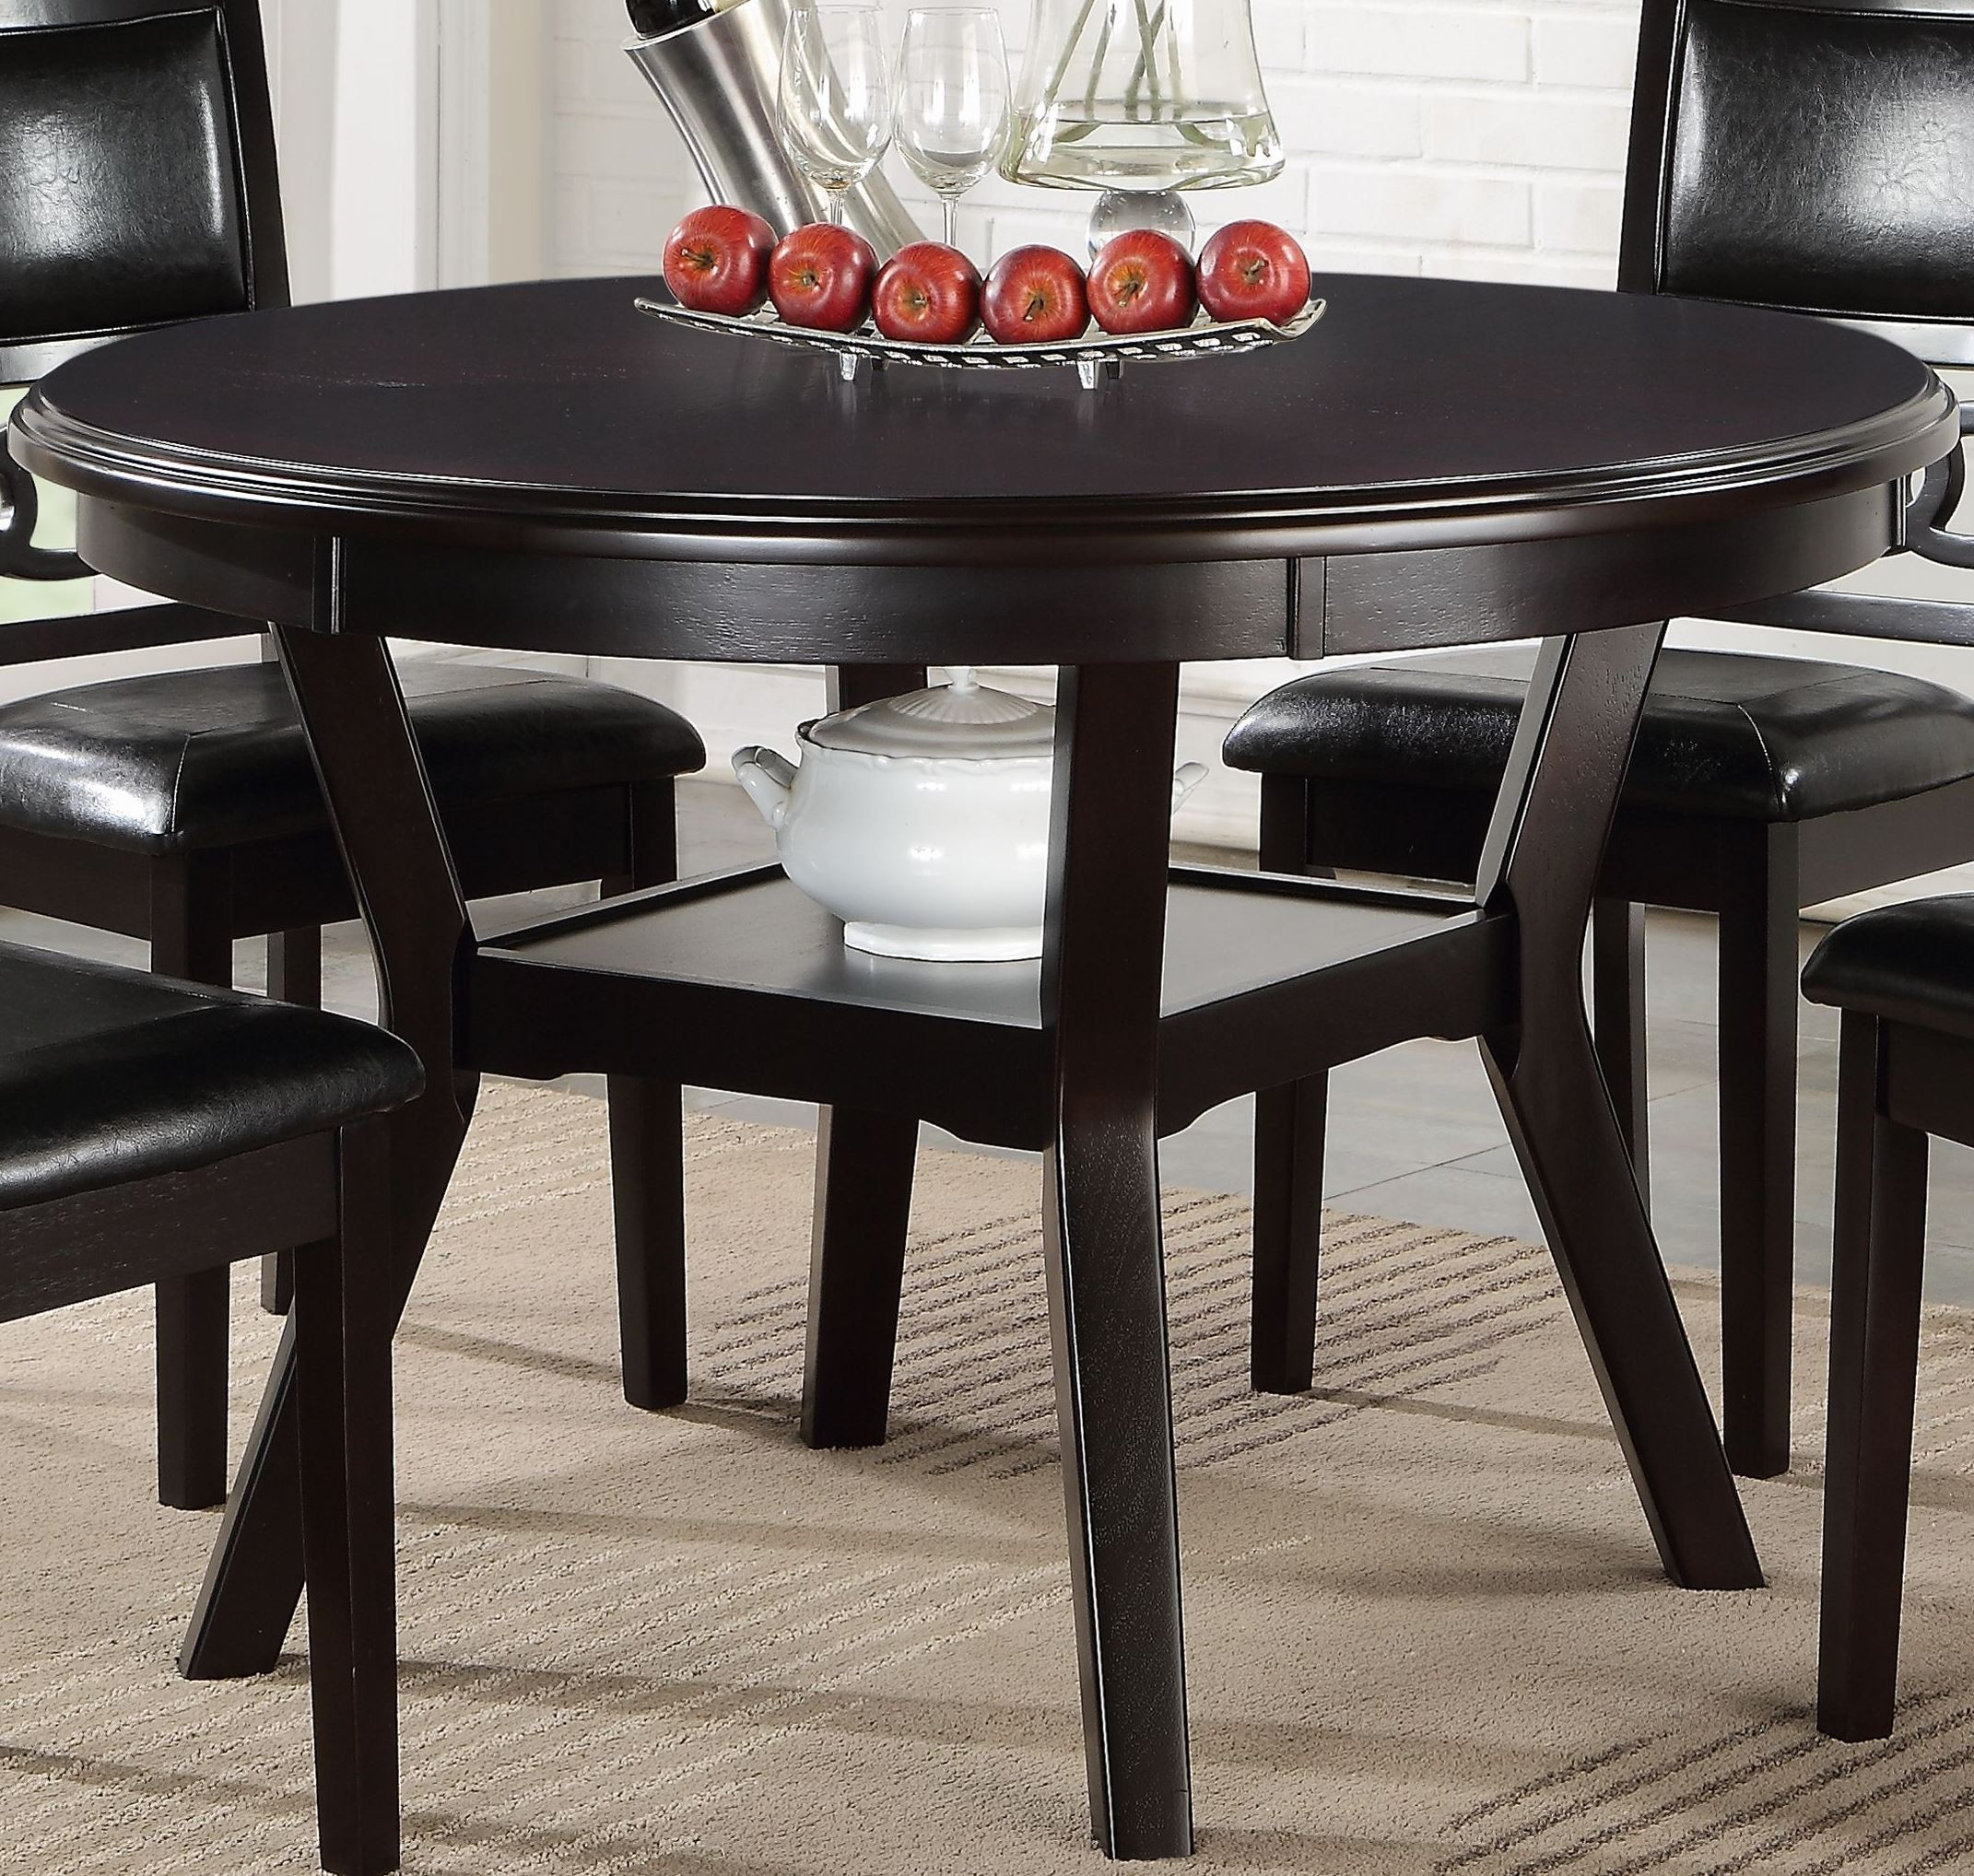 50s Table And Chairs 5 Pcs Gia Ebony Round Dining Table Set D1701 50s Ebo New